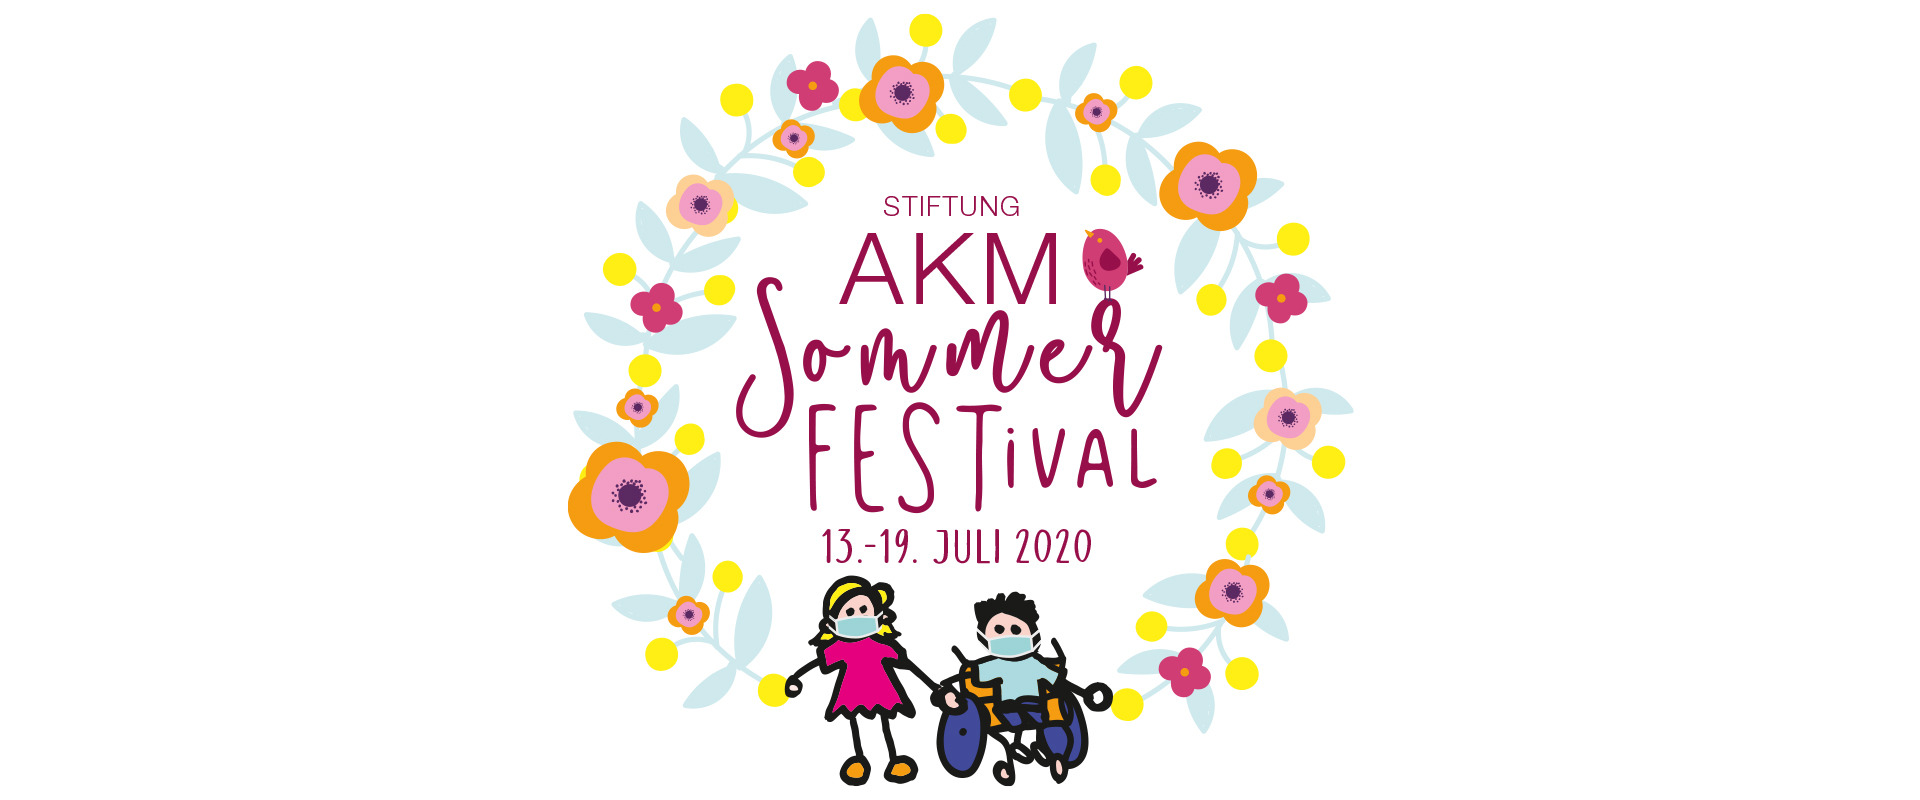 jun20_akm-sommerfestival_website-header_1920x800_v1